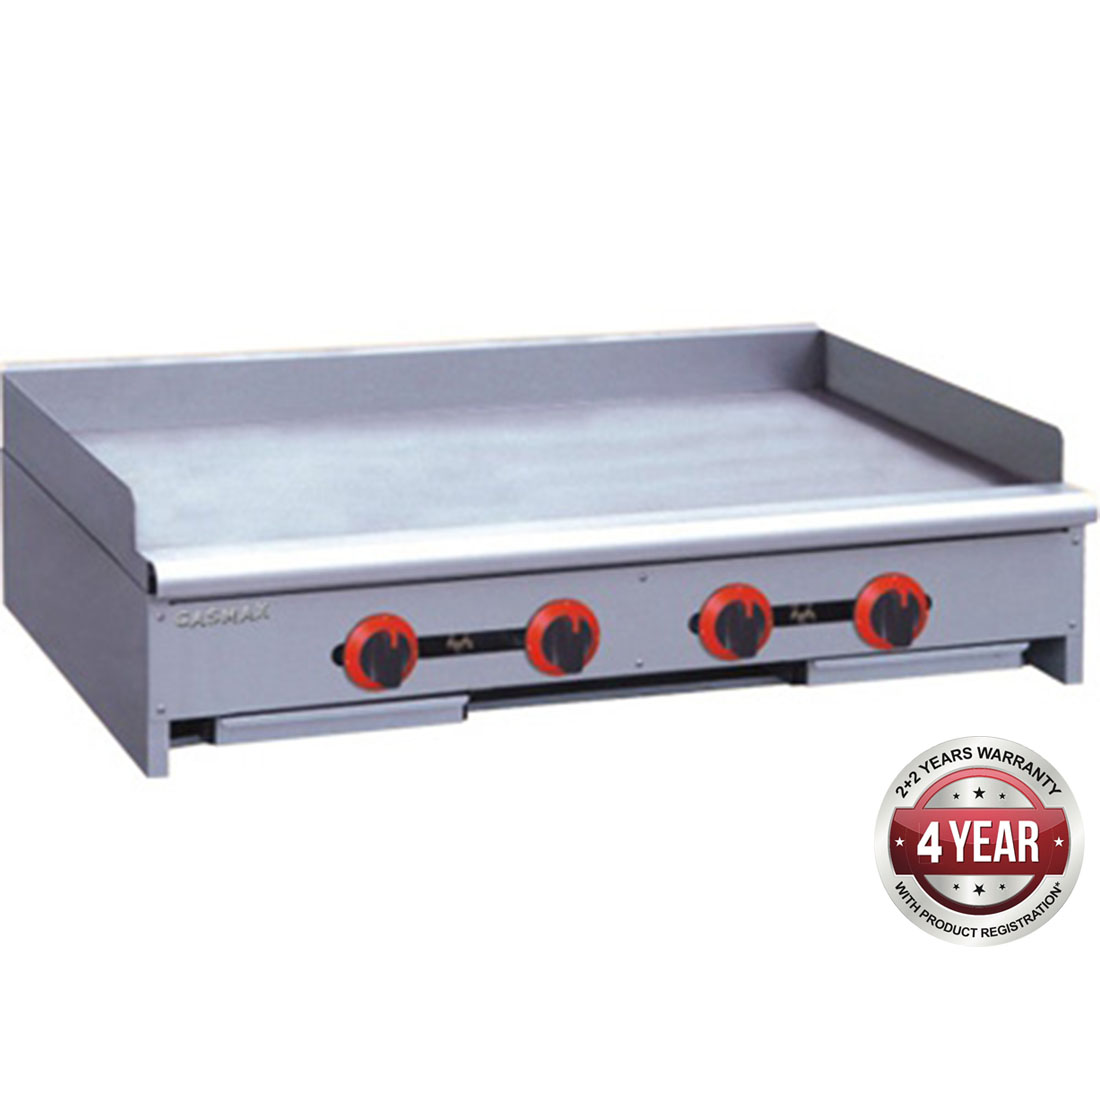 RGT-48ELPG Four burner griddle LPG